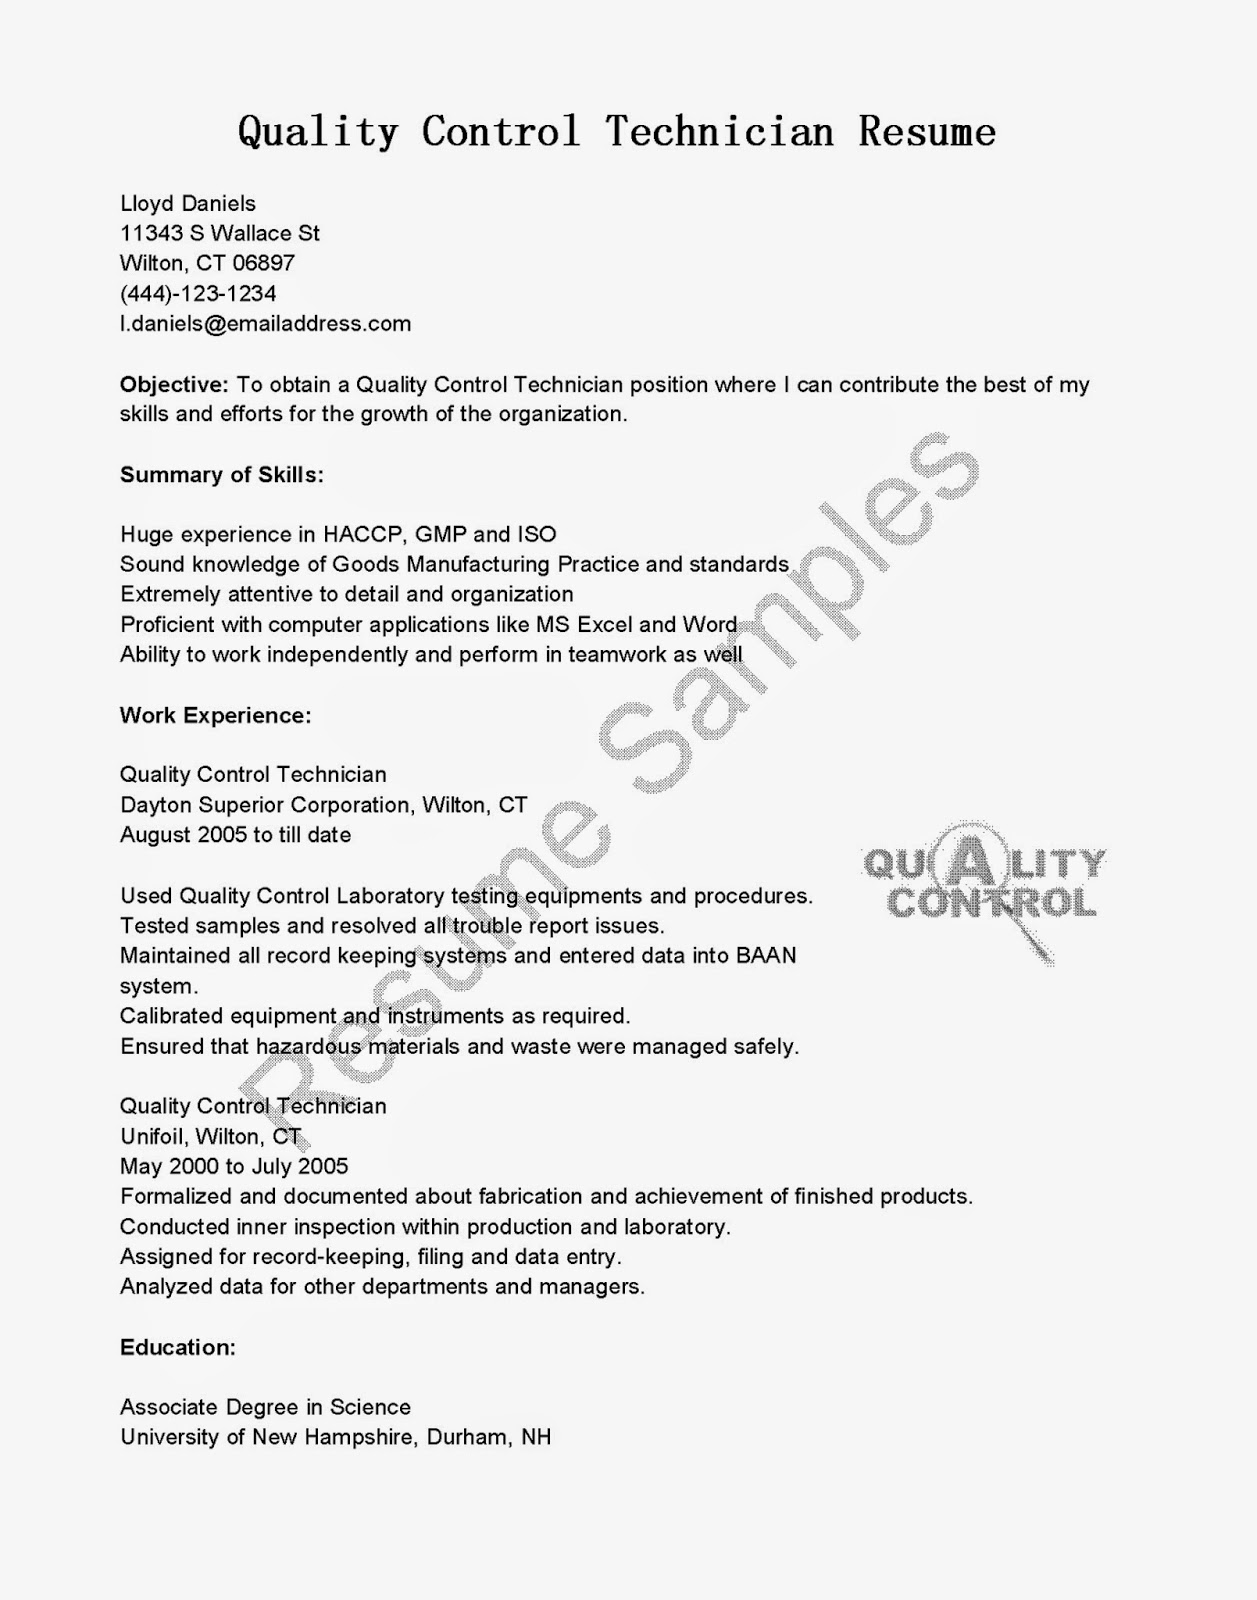 veterinary technician resume samples veterinarian assistant resume sample template best medical veterinary technician essay resume formt